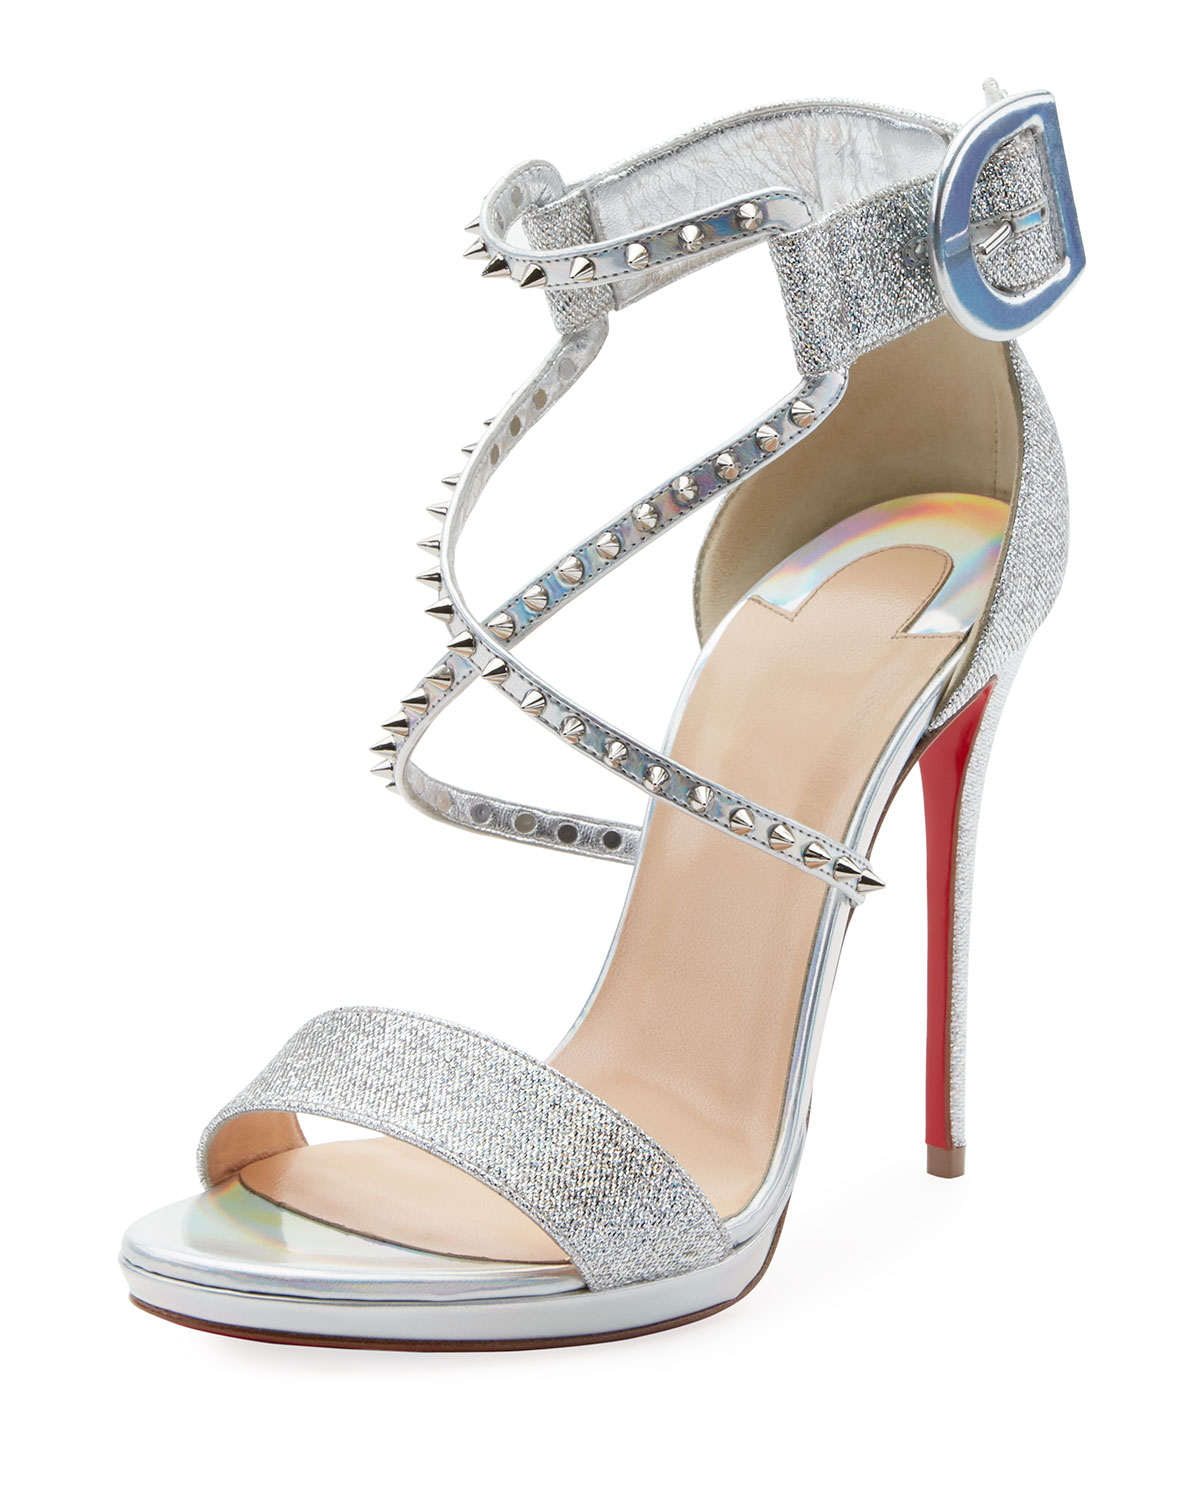 aecd78fe30 Christian Louboutin Women's Shoes and Boots at MuchosBesitos